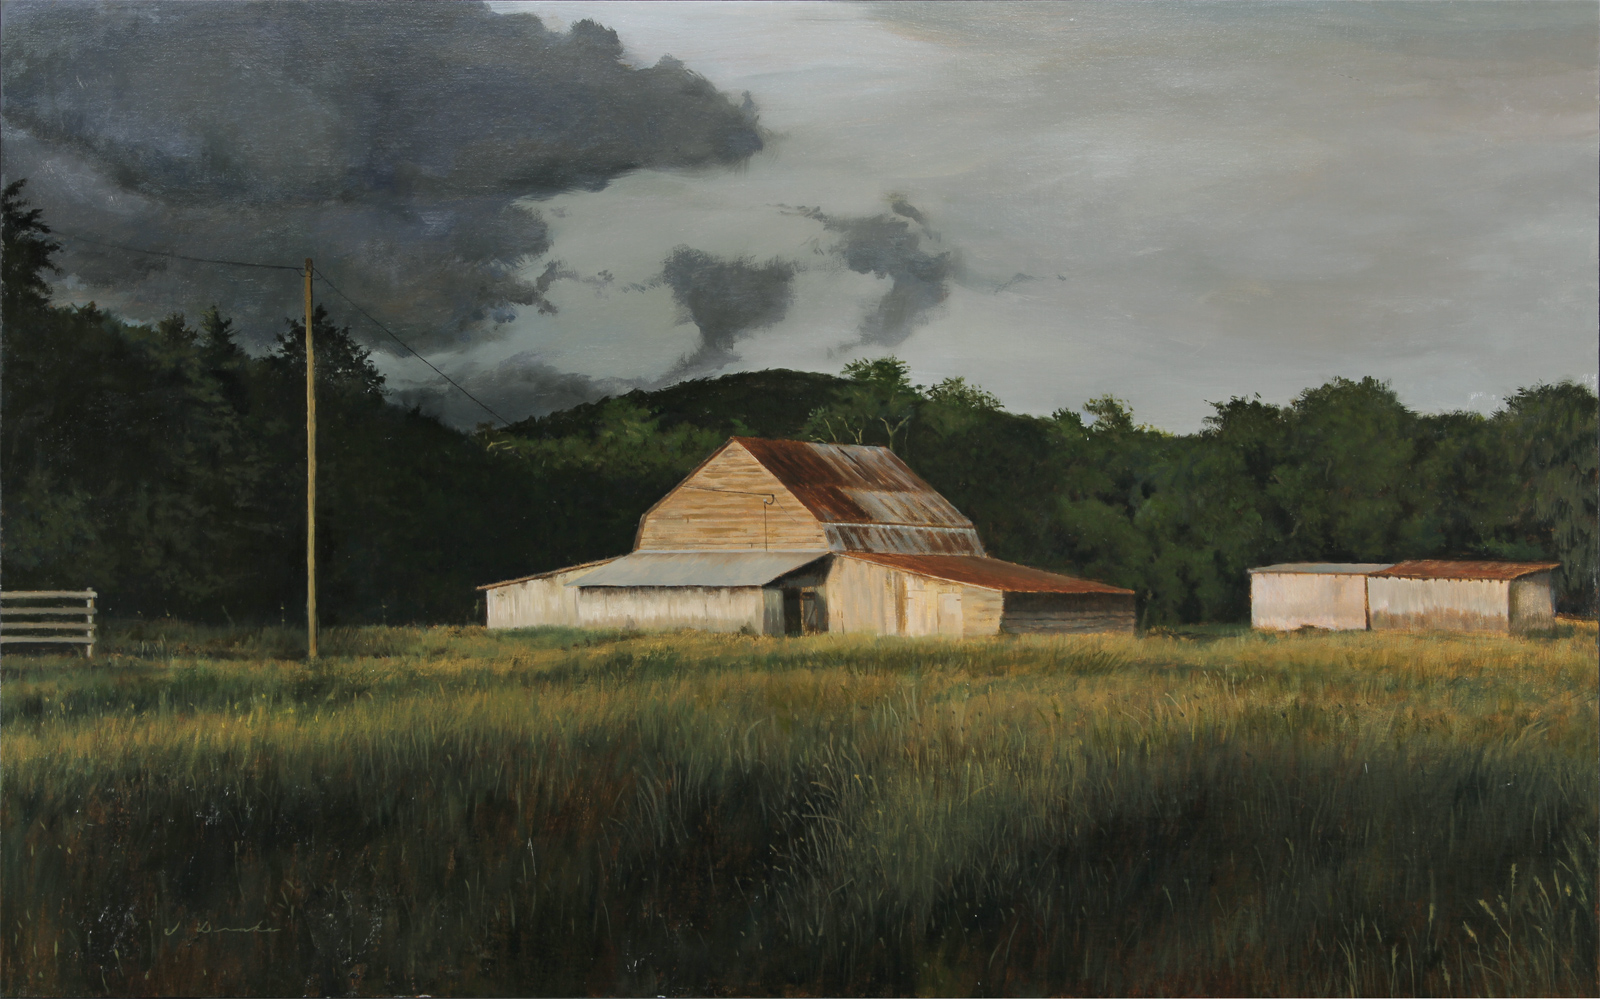 """Storm Clouds Over Boone"" will be offered for sale at the Blowing Rock Frameworks & Gallery in June."